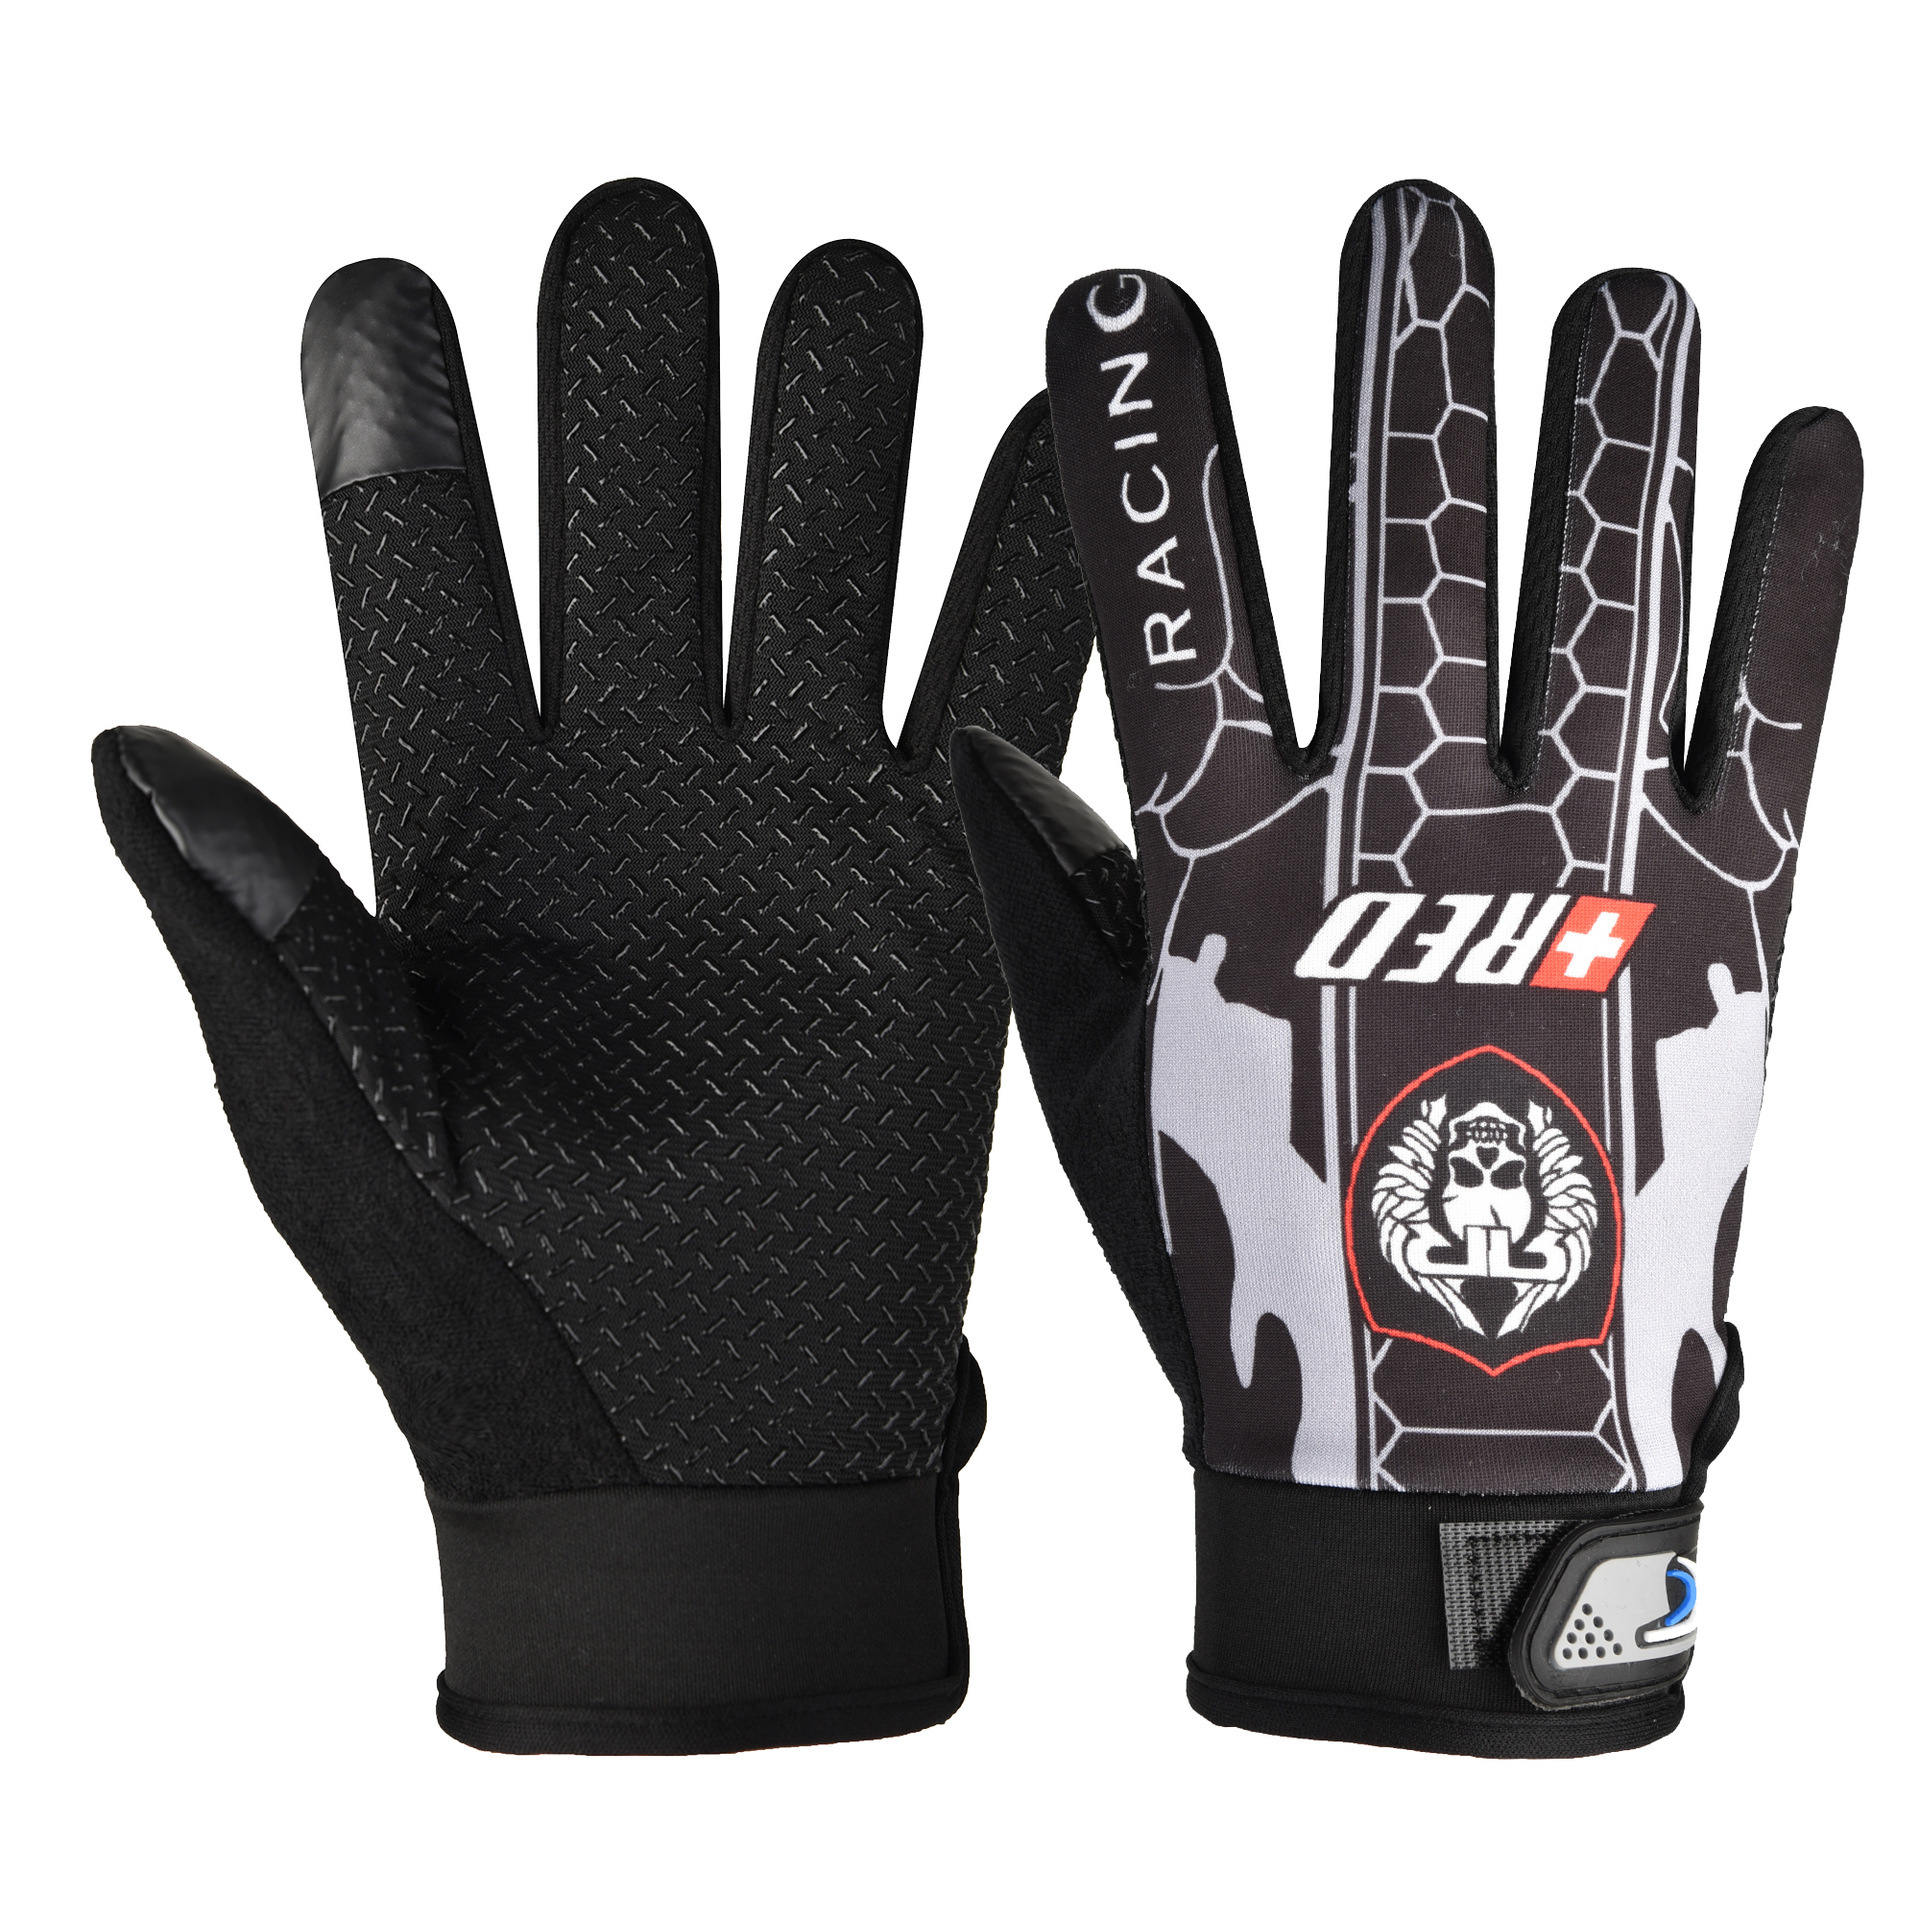 Breathable Quick-Dry Gloves for Sports Activities